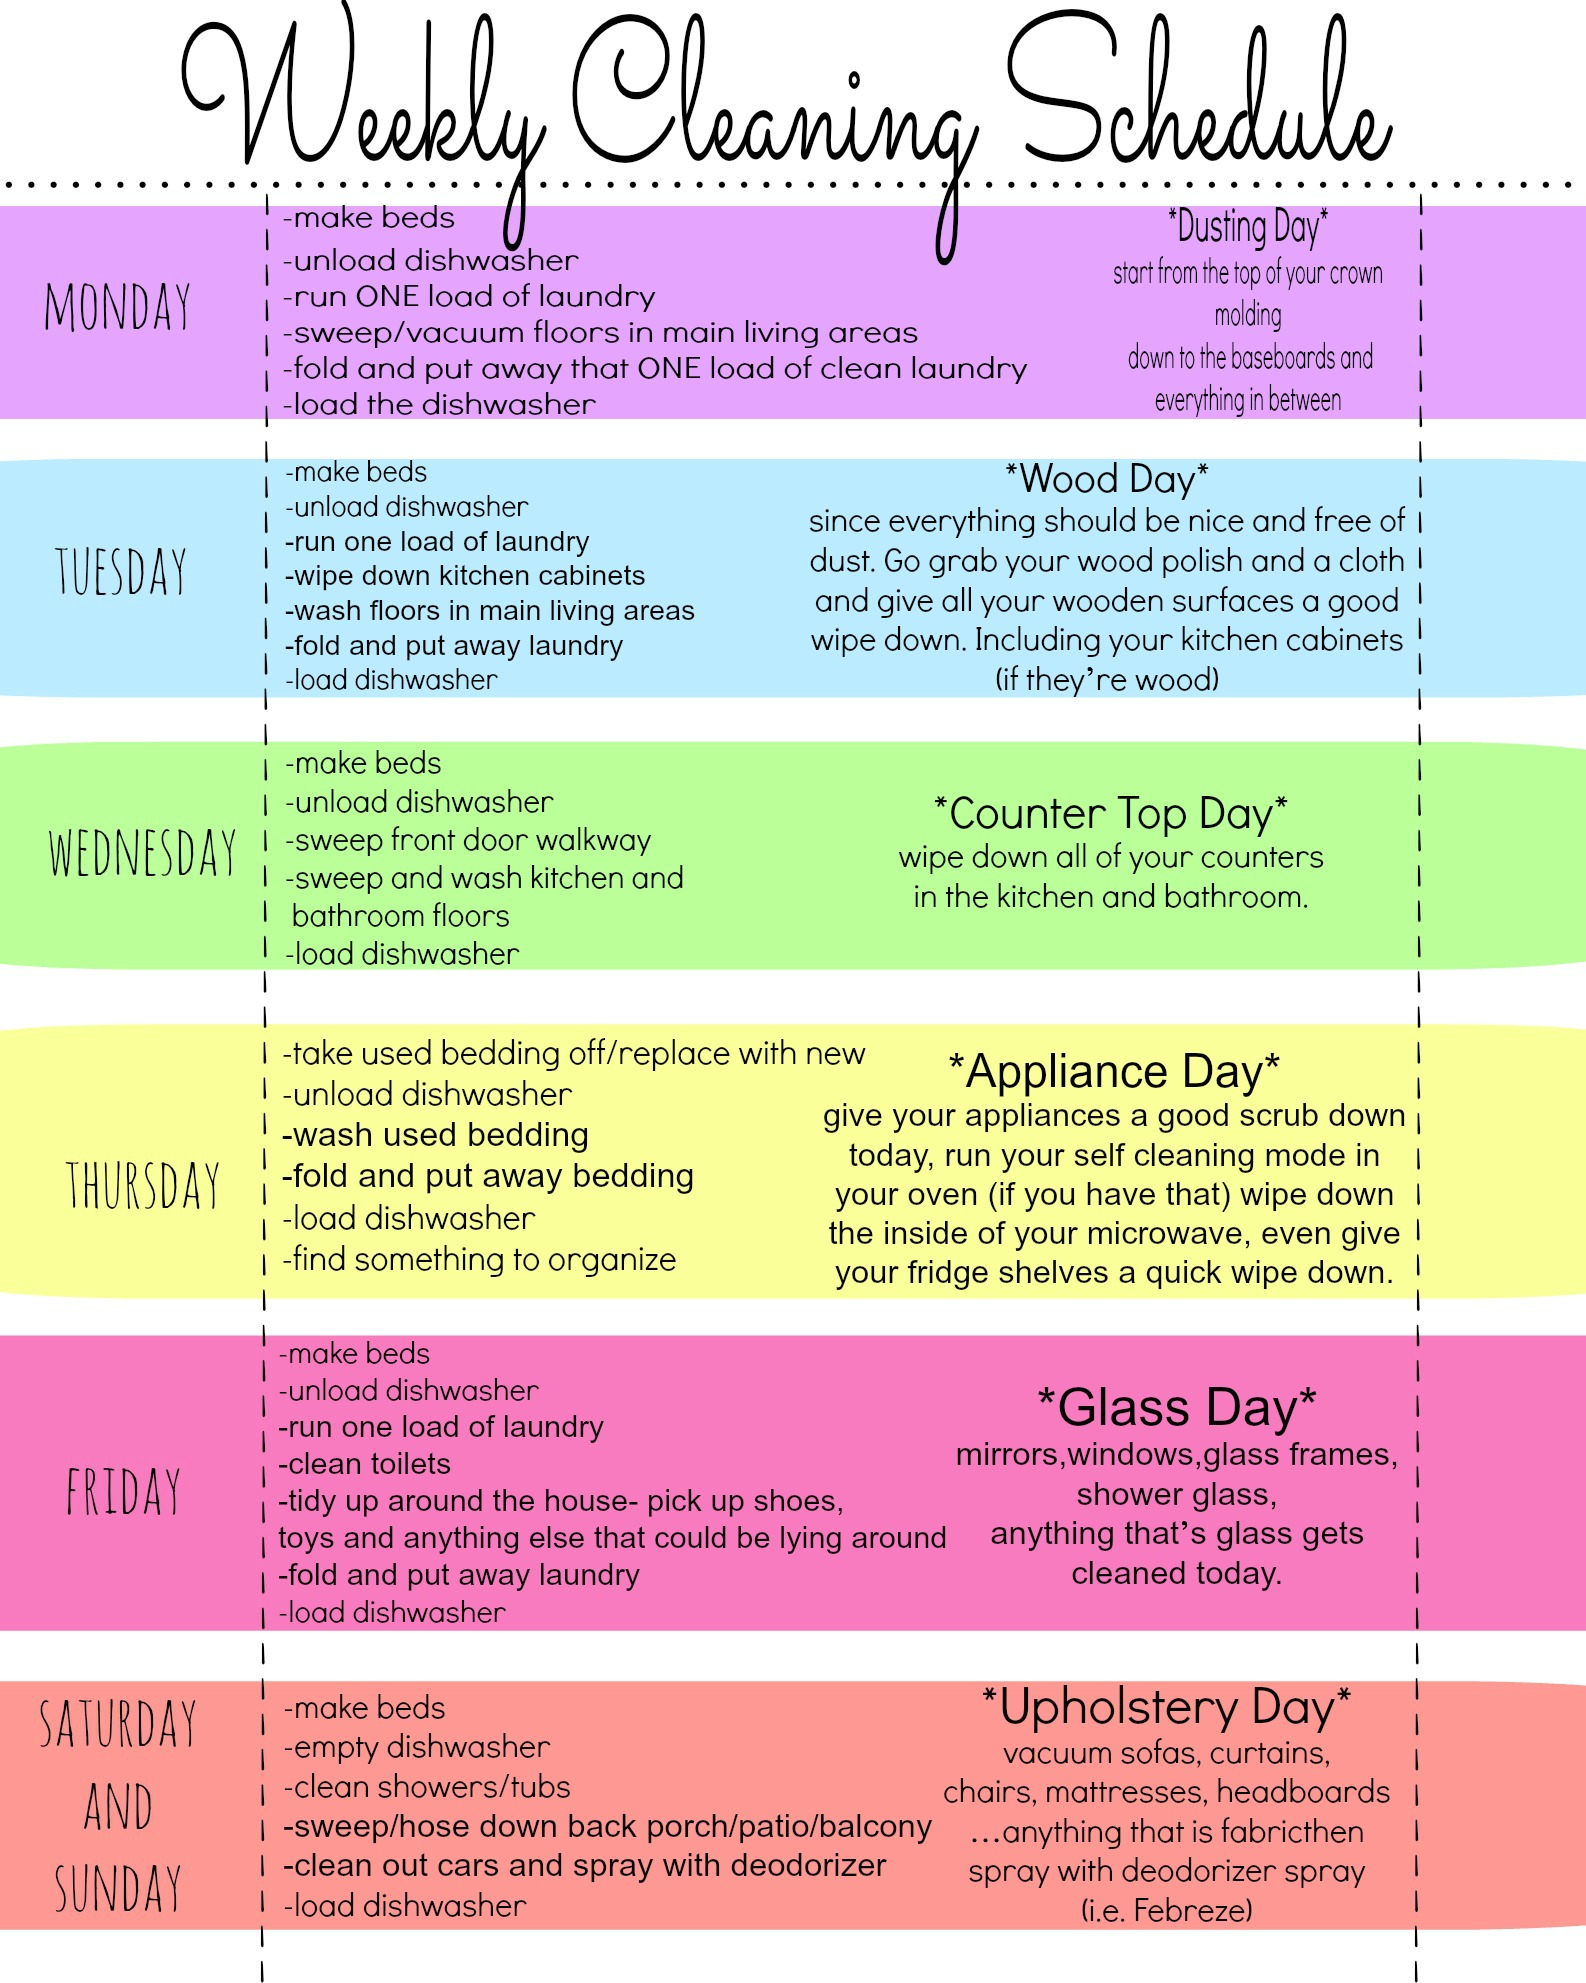 Get 20+ Cleaning schedule printable ideas on Pinterest without